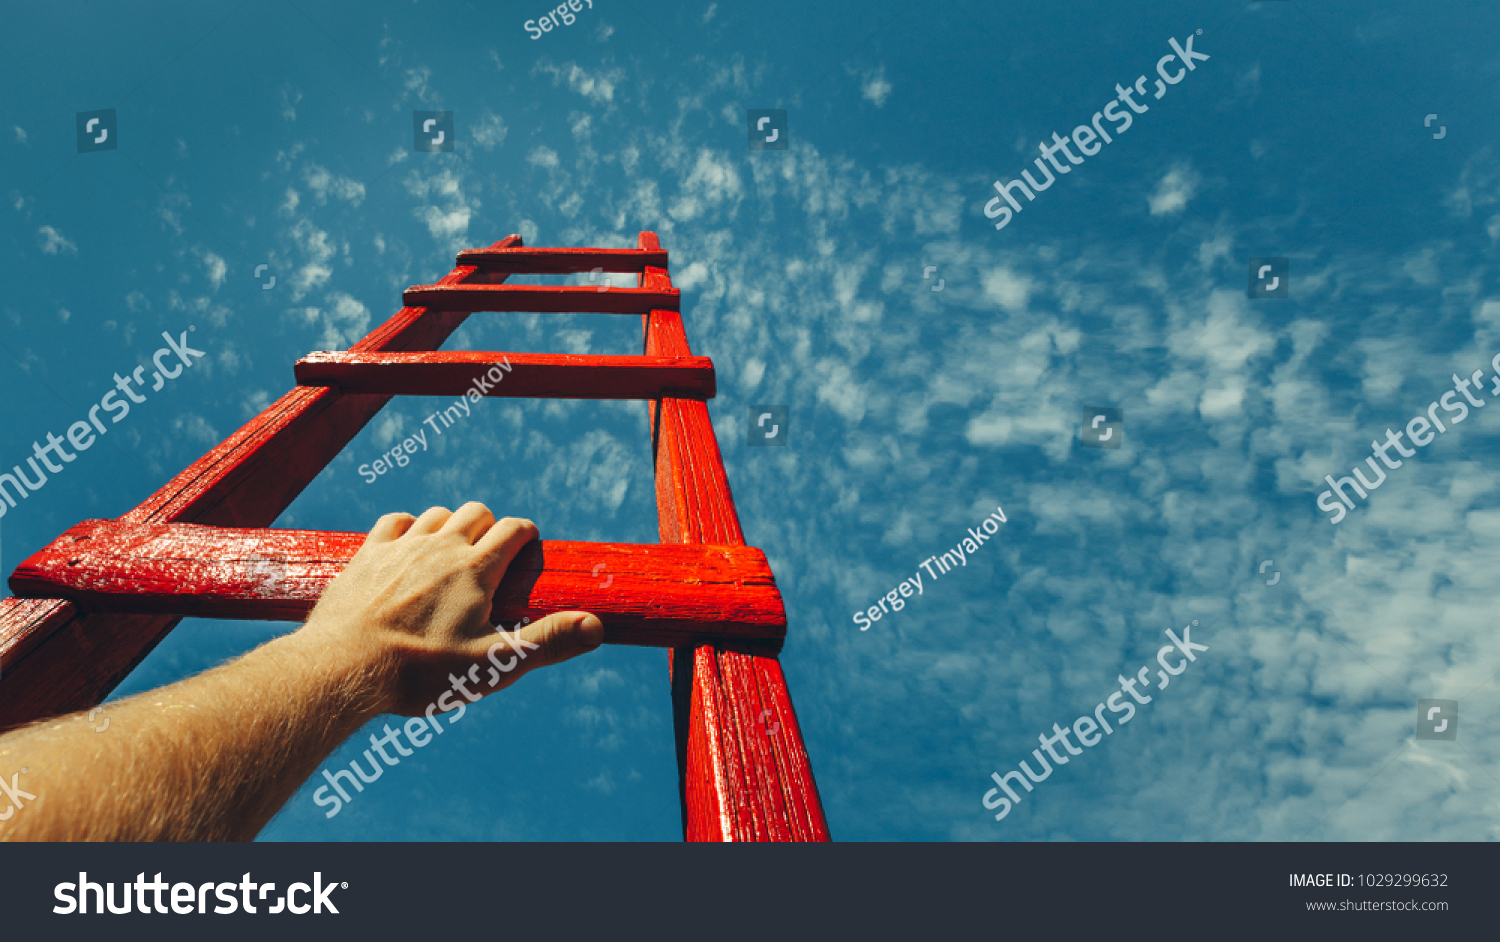 Development Attainment Motivation Career Growth Concept. Mans Hand Reaching For Red Ladder Leading To A Blue Sky #1029299632